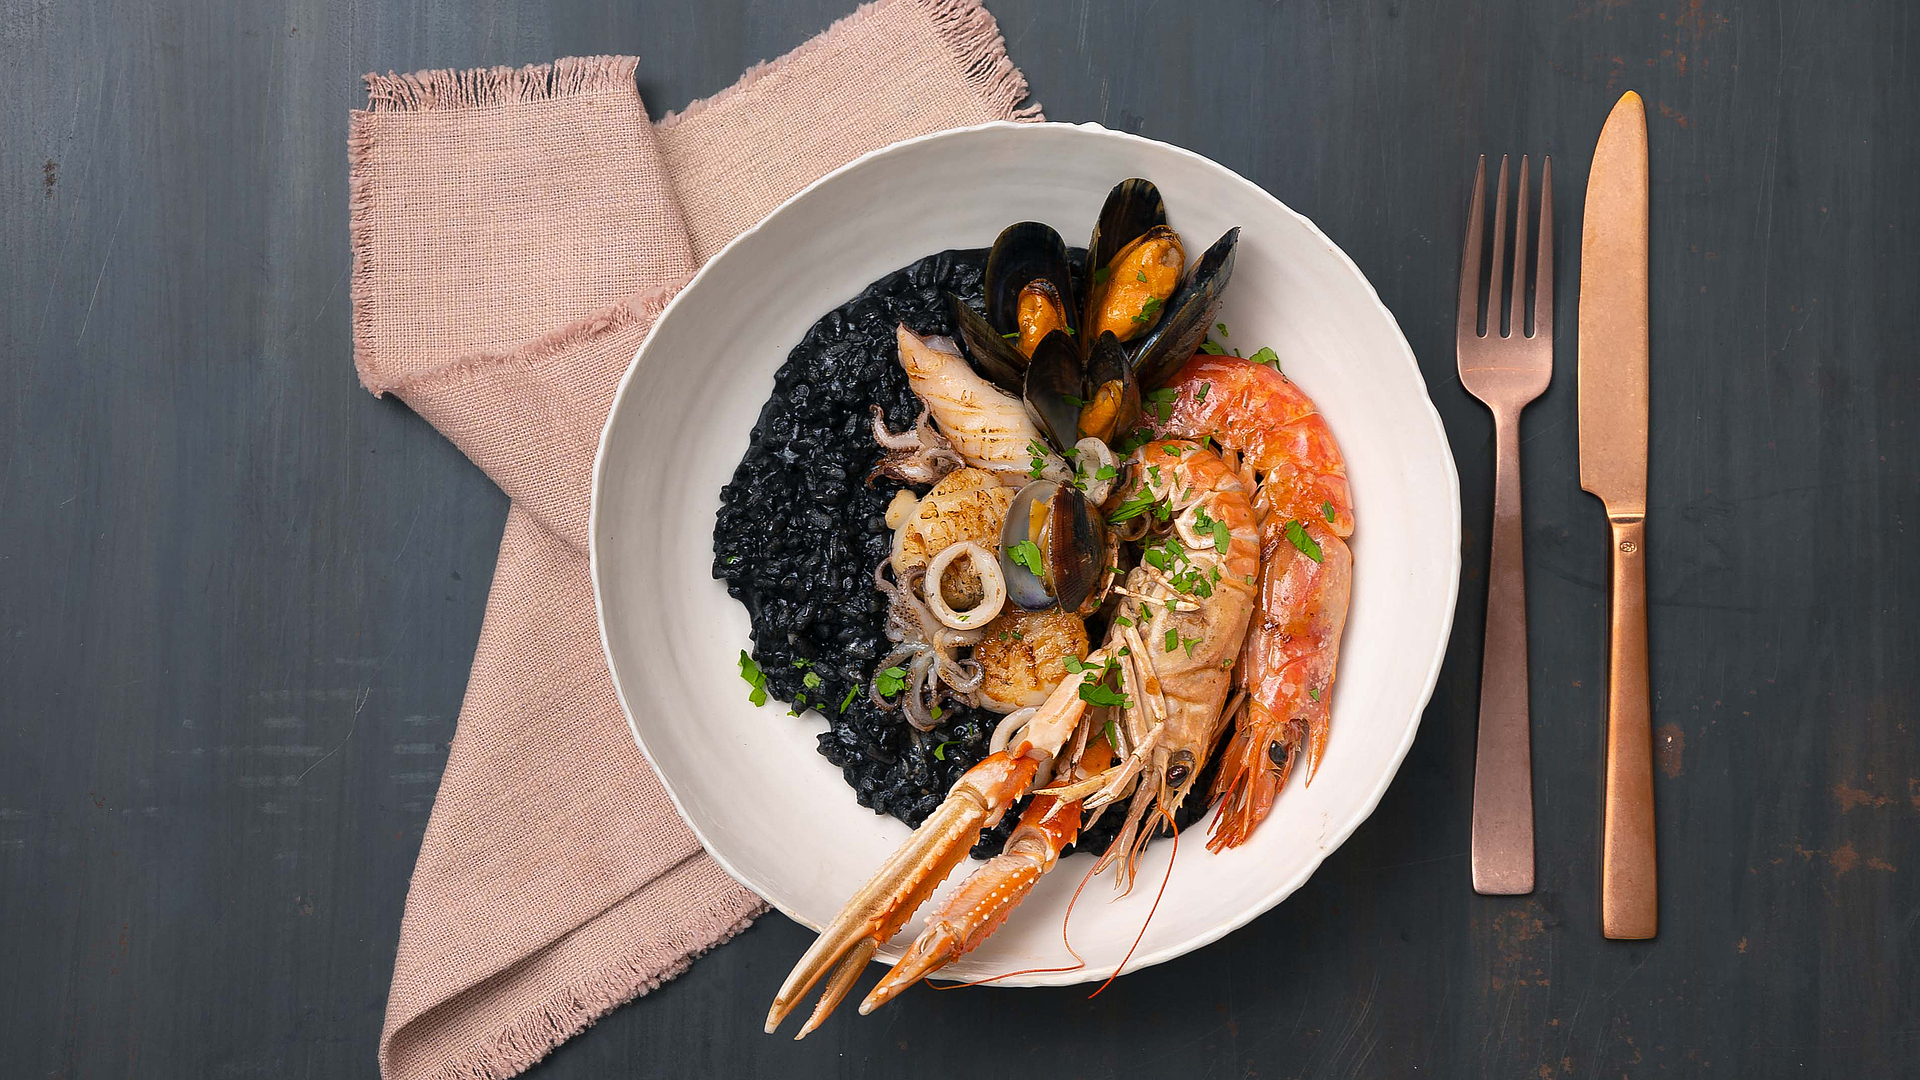 Black risotto with crustaceans